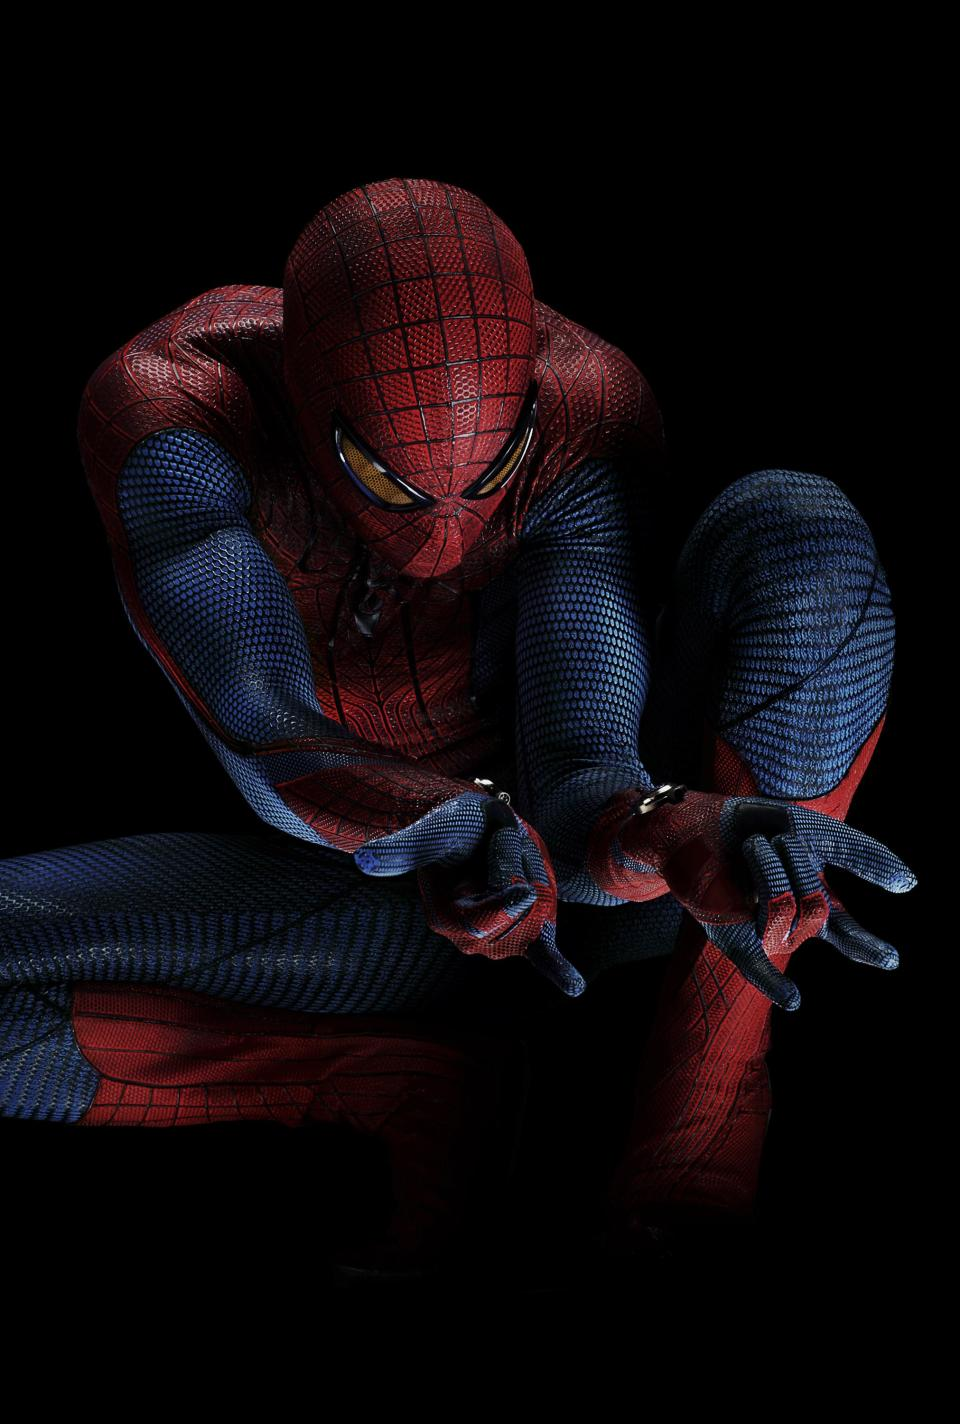 A still from the movie 'The Amazing Spider-man'